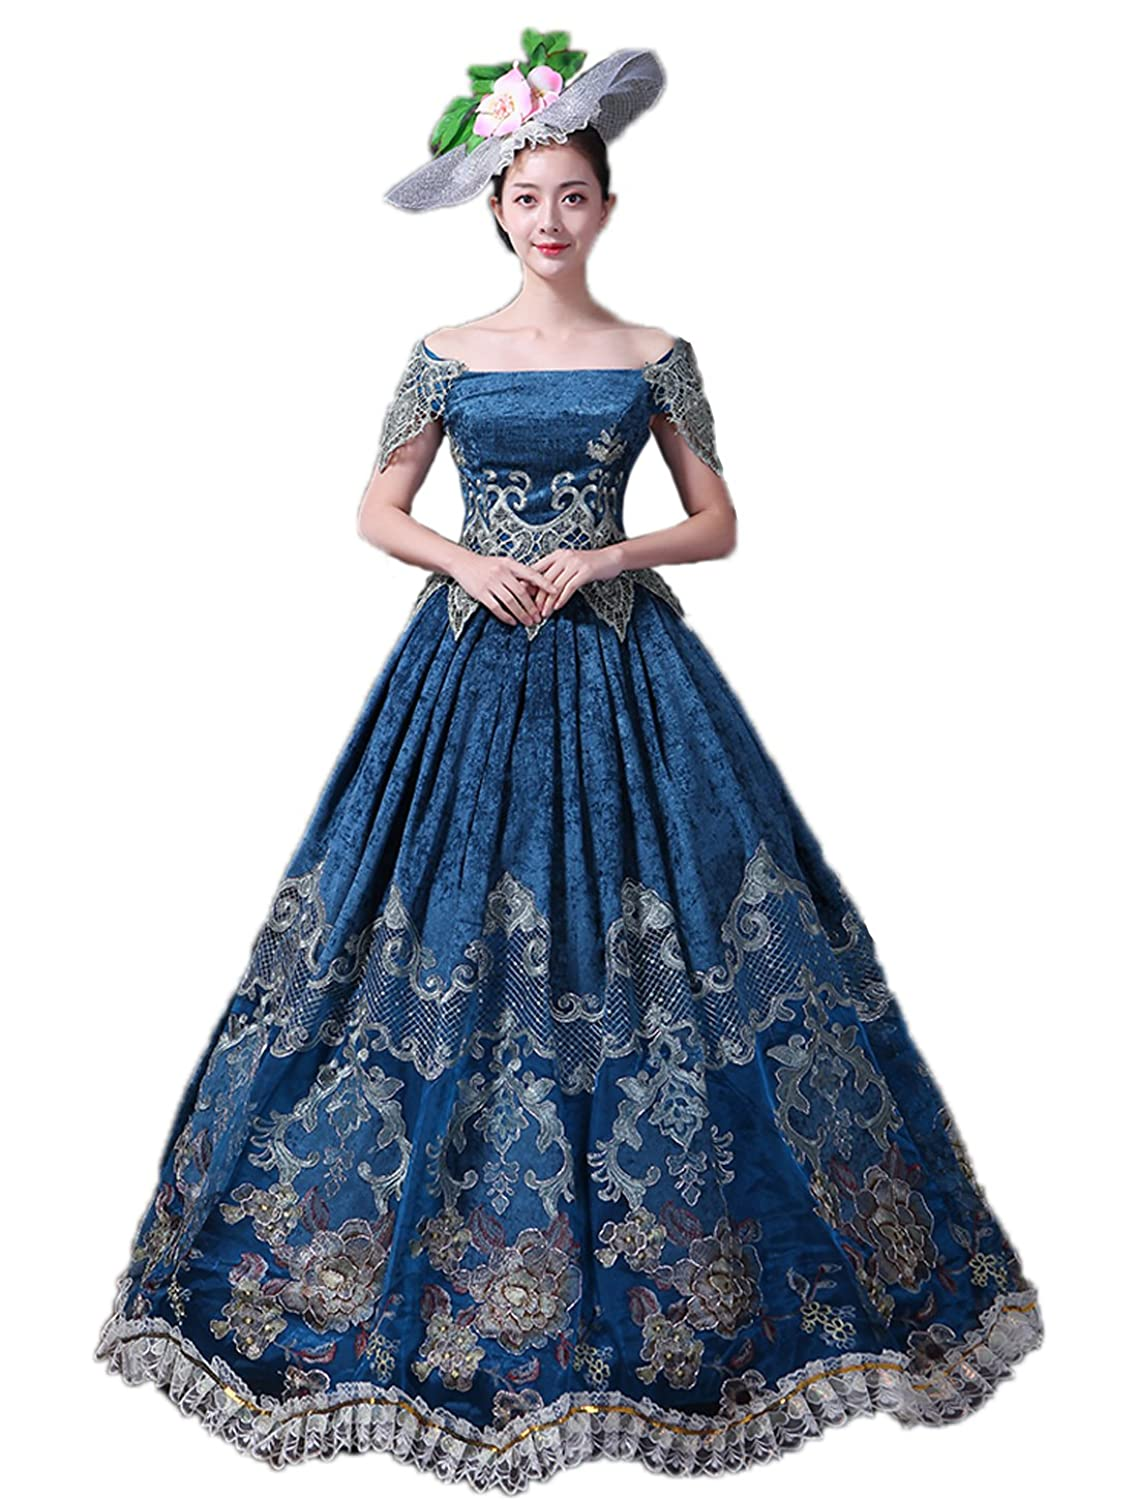 4b3062d1718e Victorian Costumes: Dresses, Saloon Girls, Southern Belle, Witch Zukzi  Womens Plus Size. Zukzi Womens Plus Size Elegant Recoco Victorian Dress  Costume Ball ...